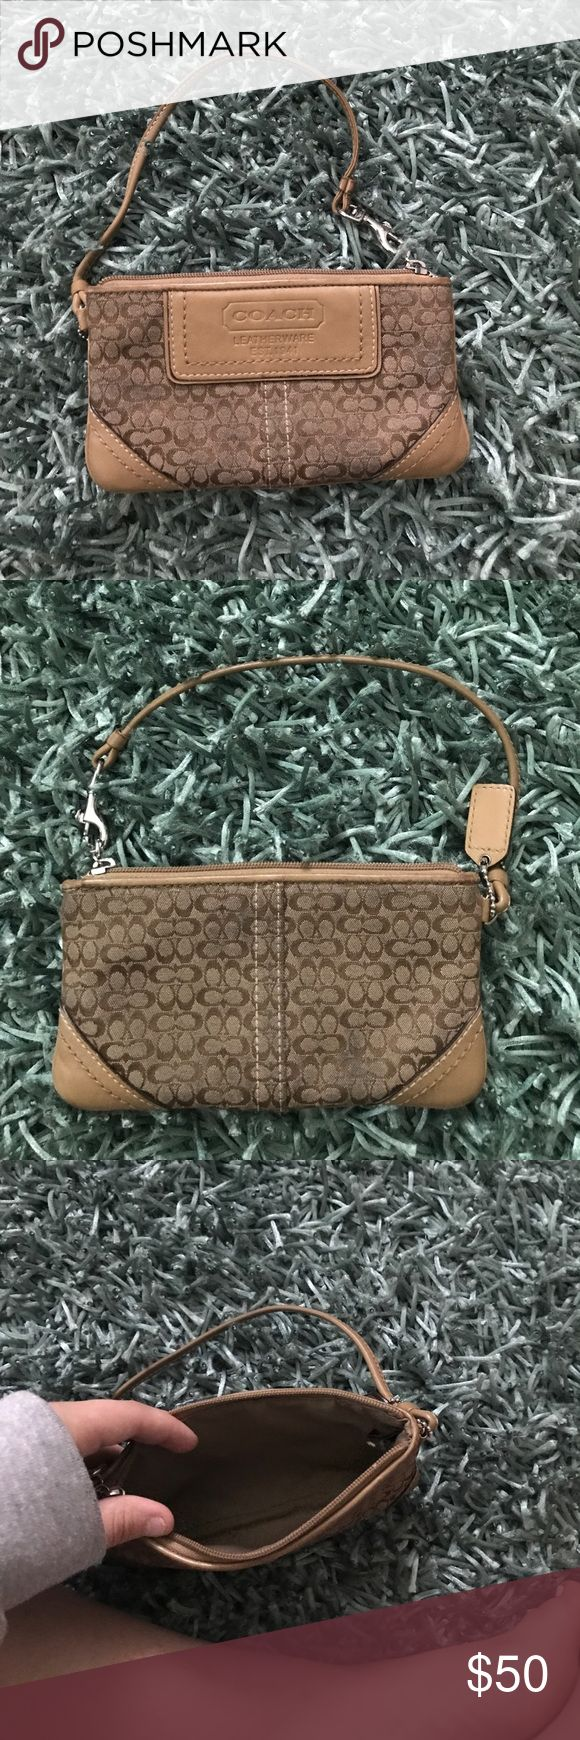 Coach wallet  monogram medium I just found this gem in my closet and it's time for it to have a new home. Coach Bags Wallets